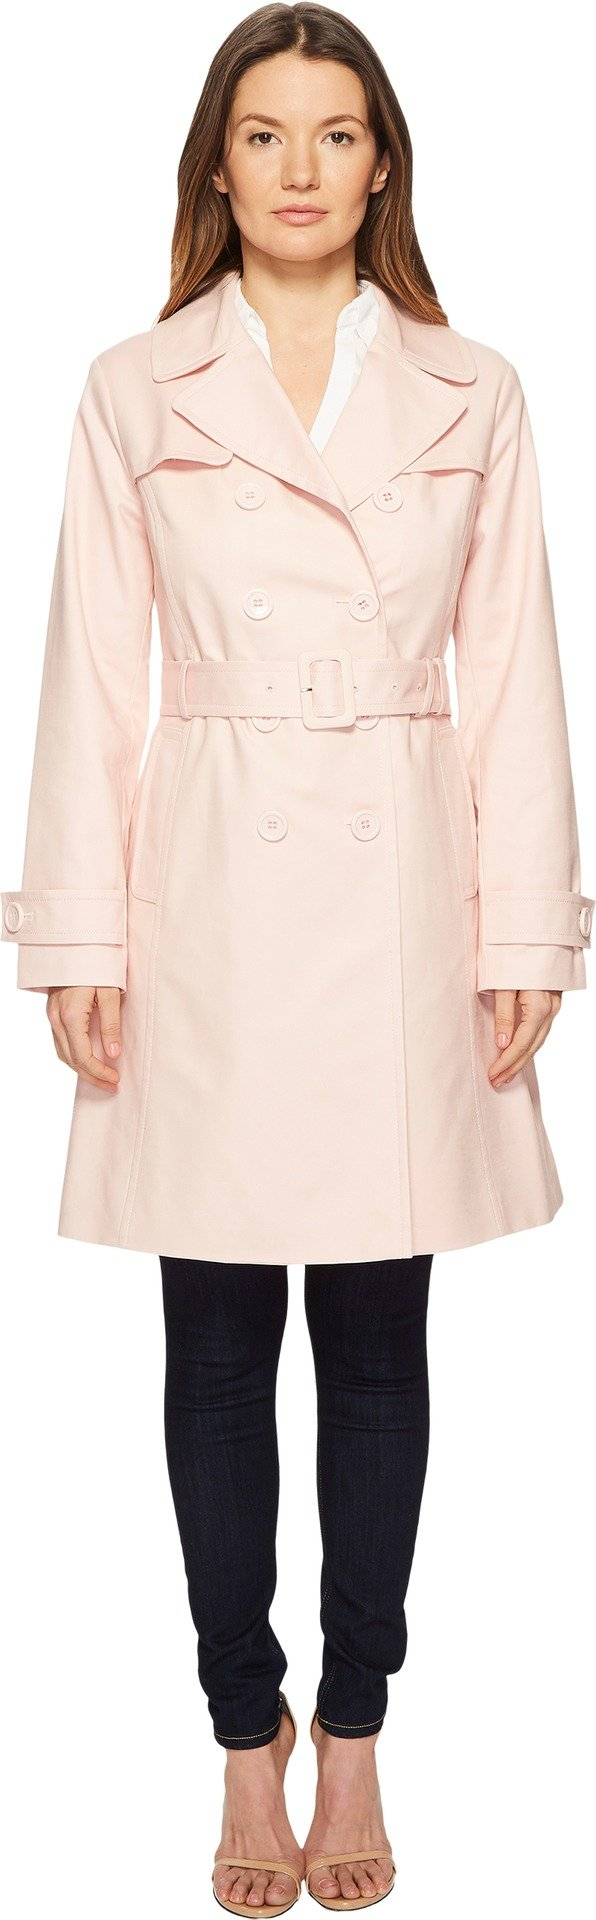 Kate Spade New York Womens 38'' Double Breasted Trench Coat w/Tie Waist Rosy Dawn MD One Size